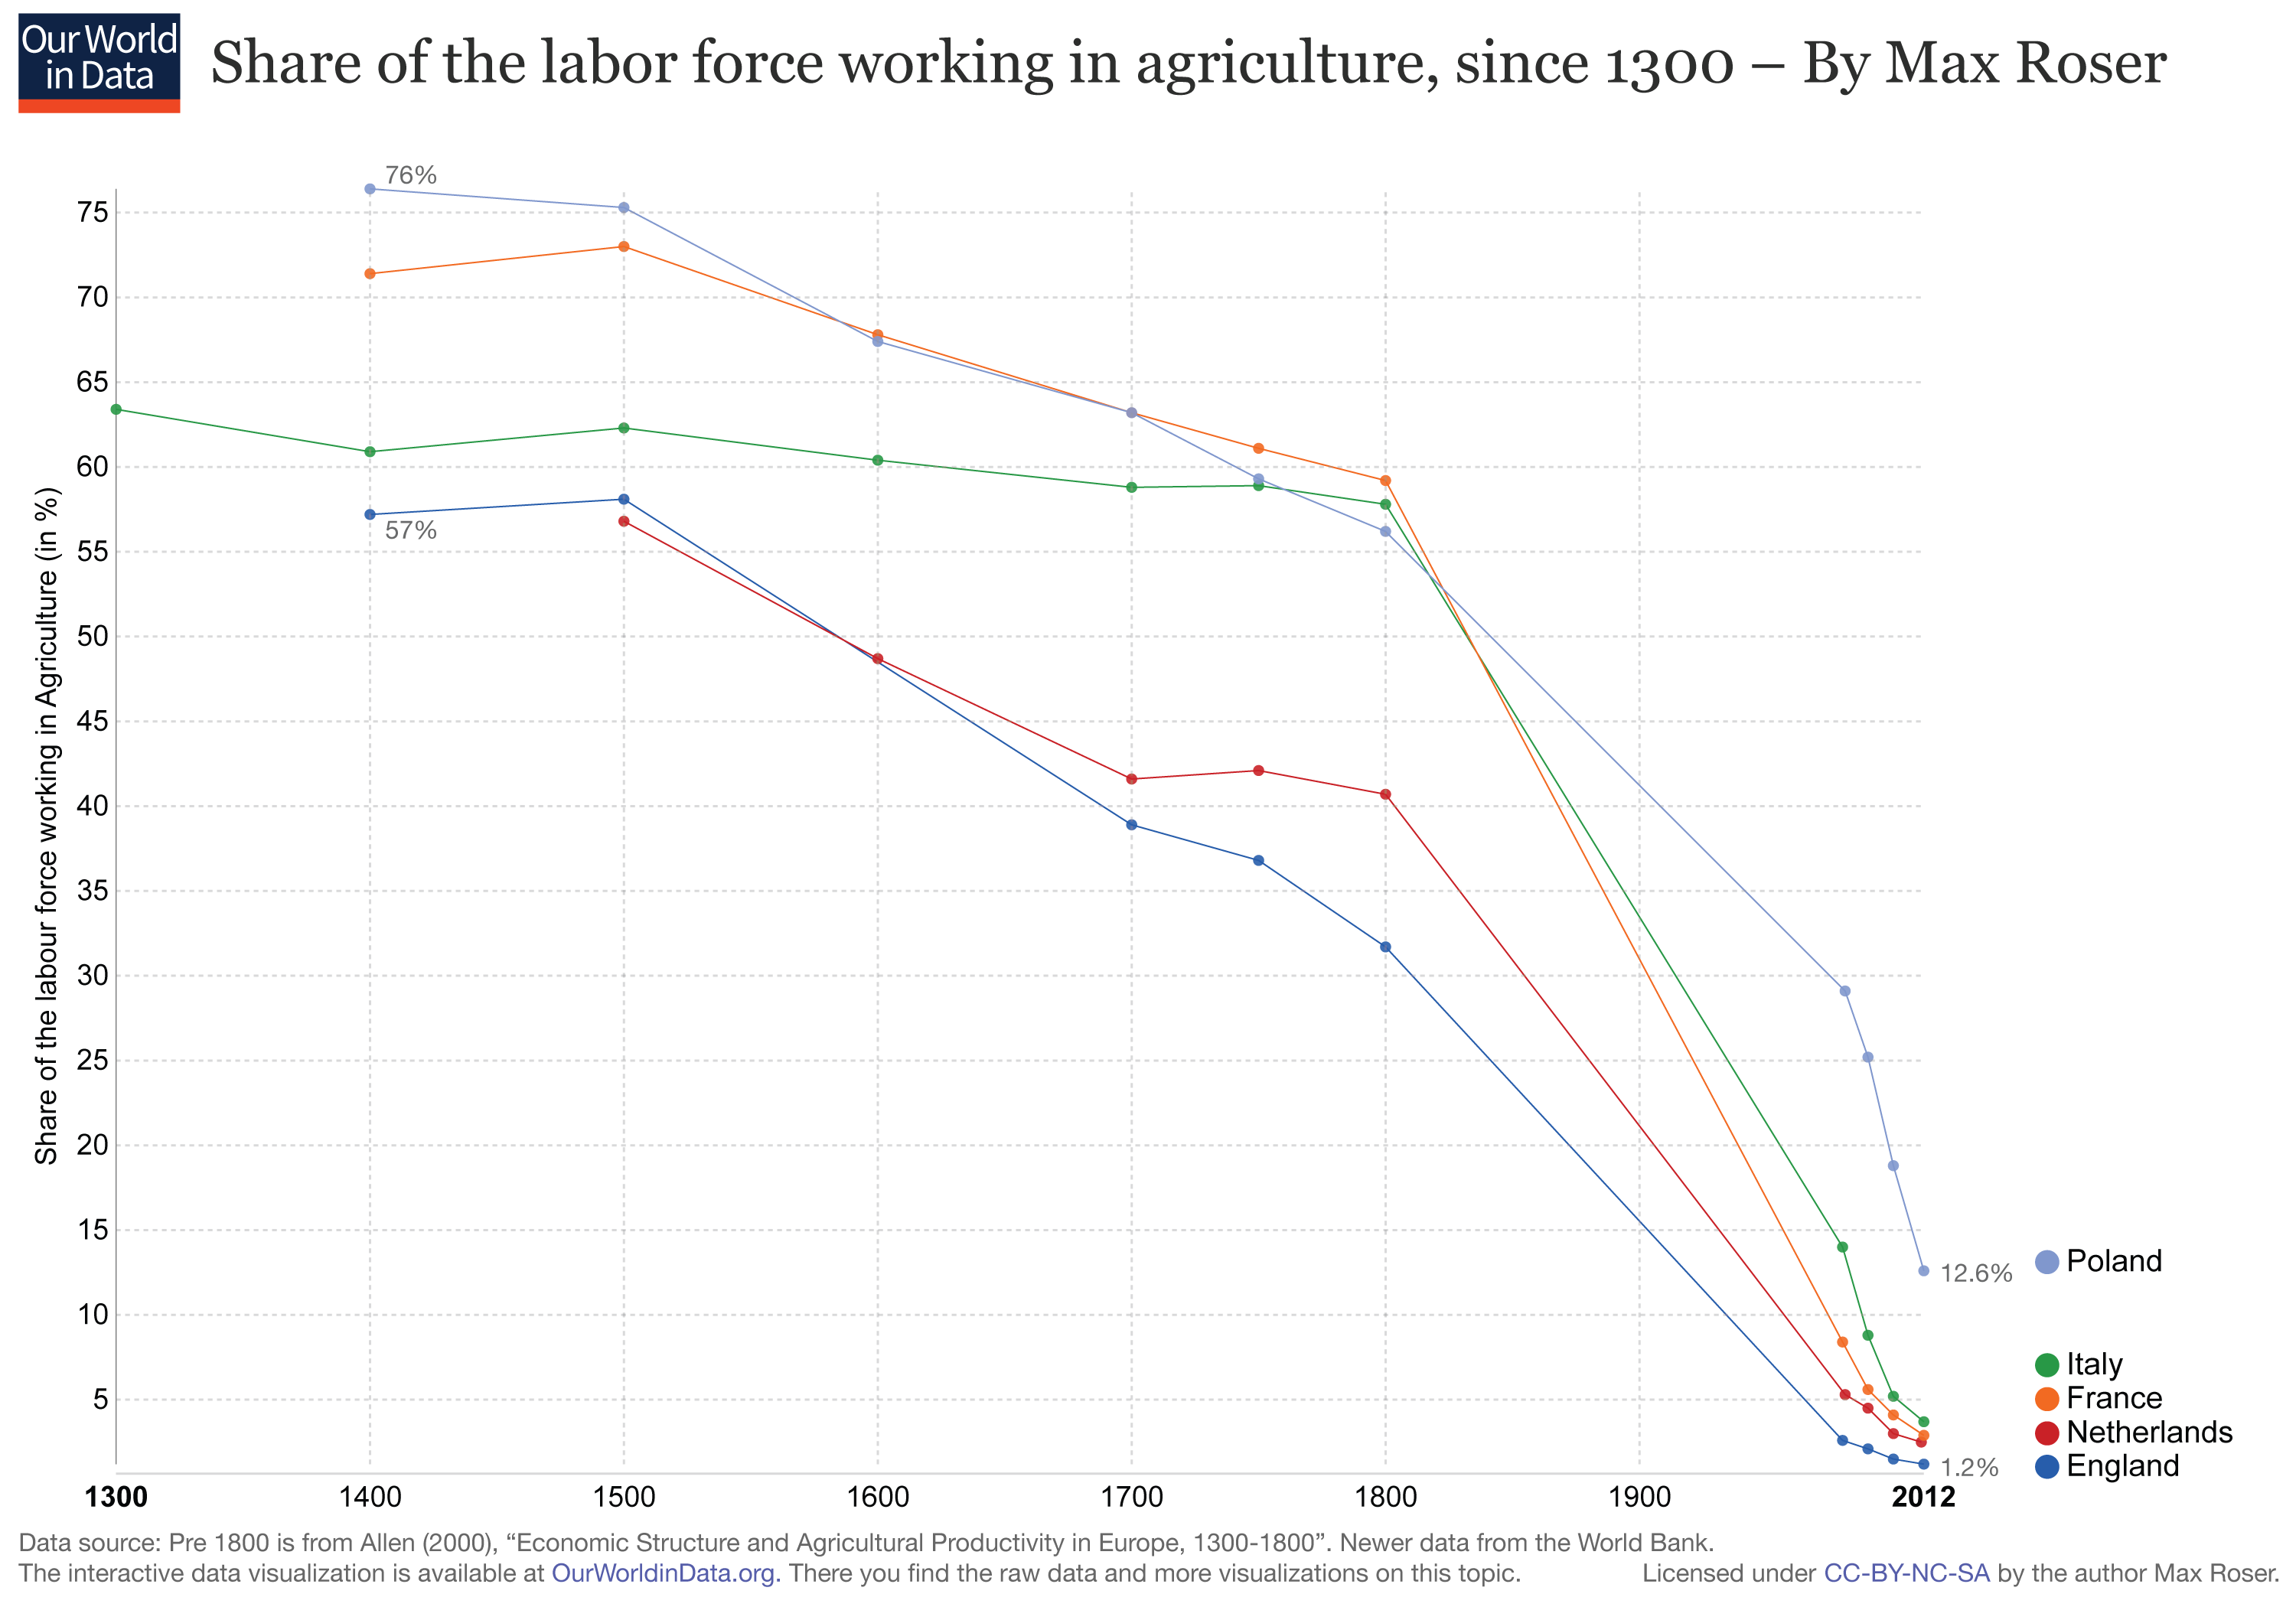 Employment in Agriculture - Our World in Data